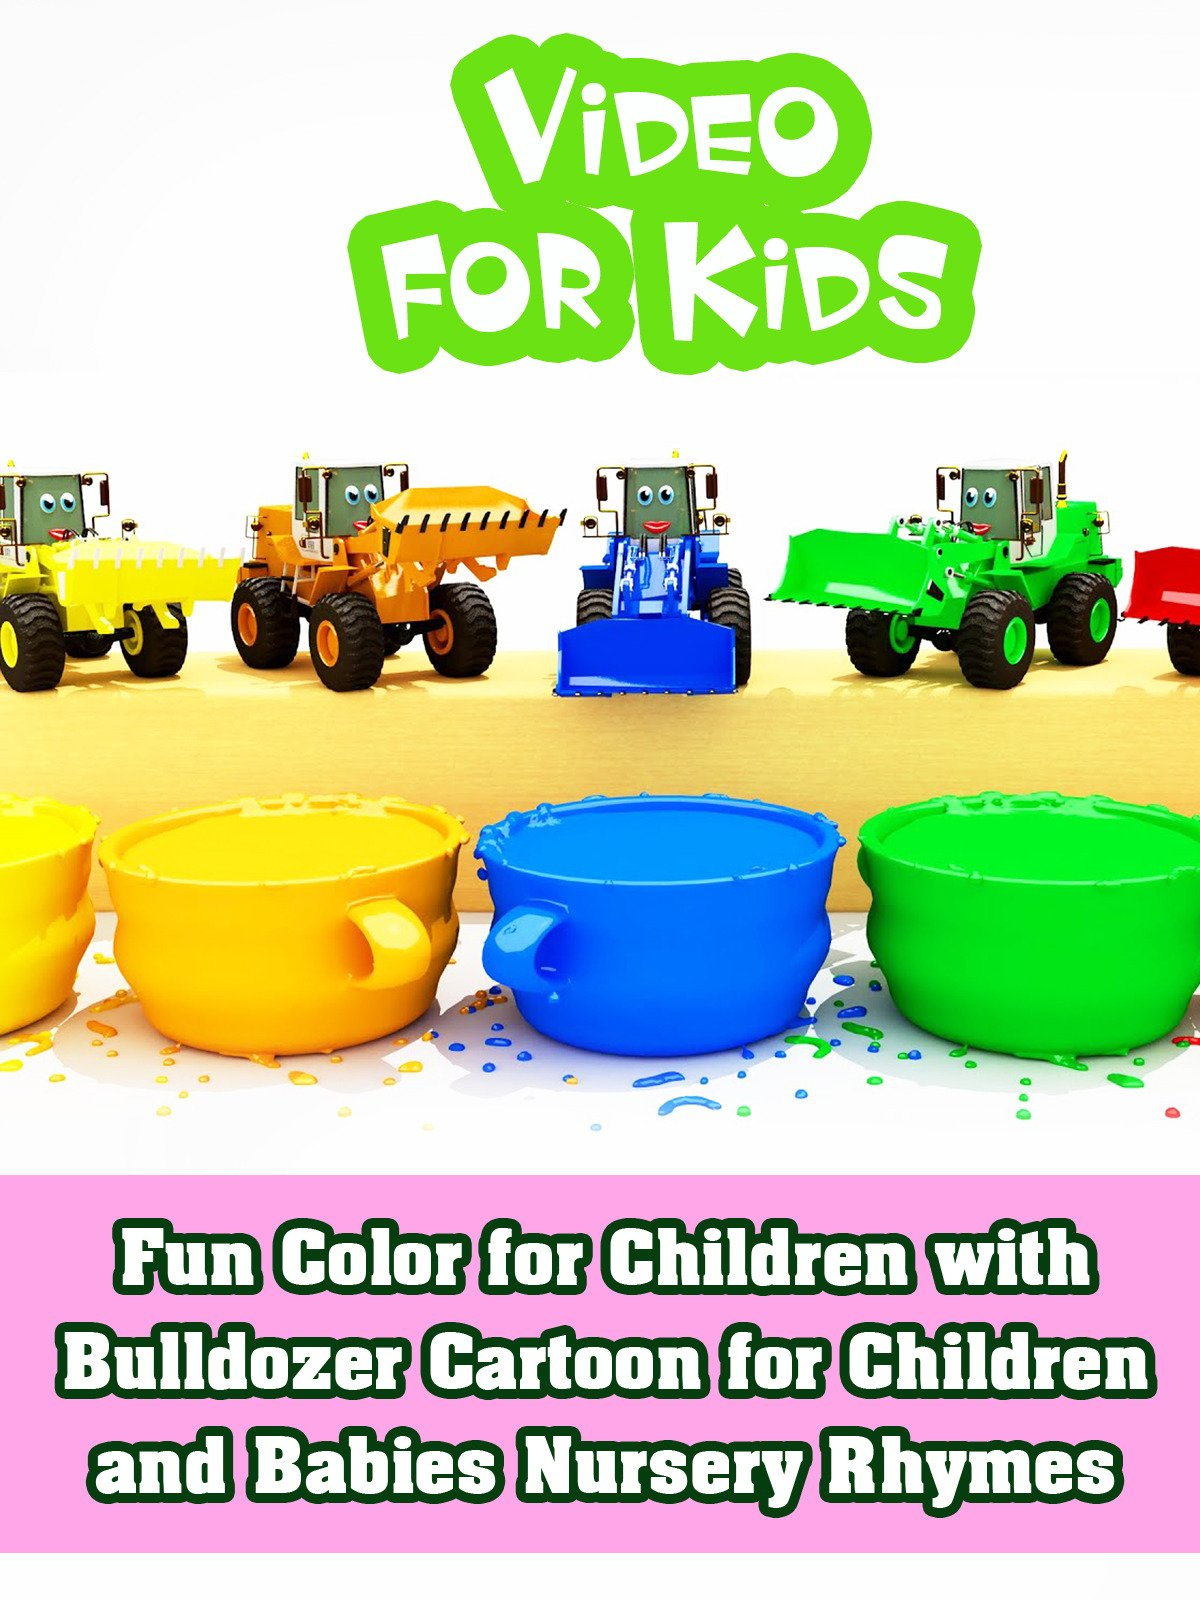 Fun Color for Children with Bulldozer Cartoon for Children and Babies Nursery Rhymes on Amazon Prime Instant Video UK